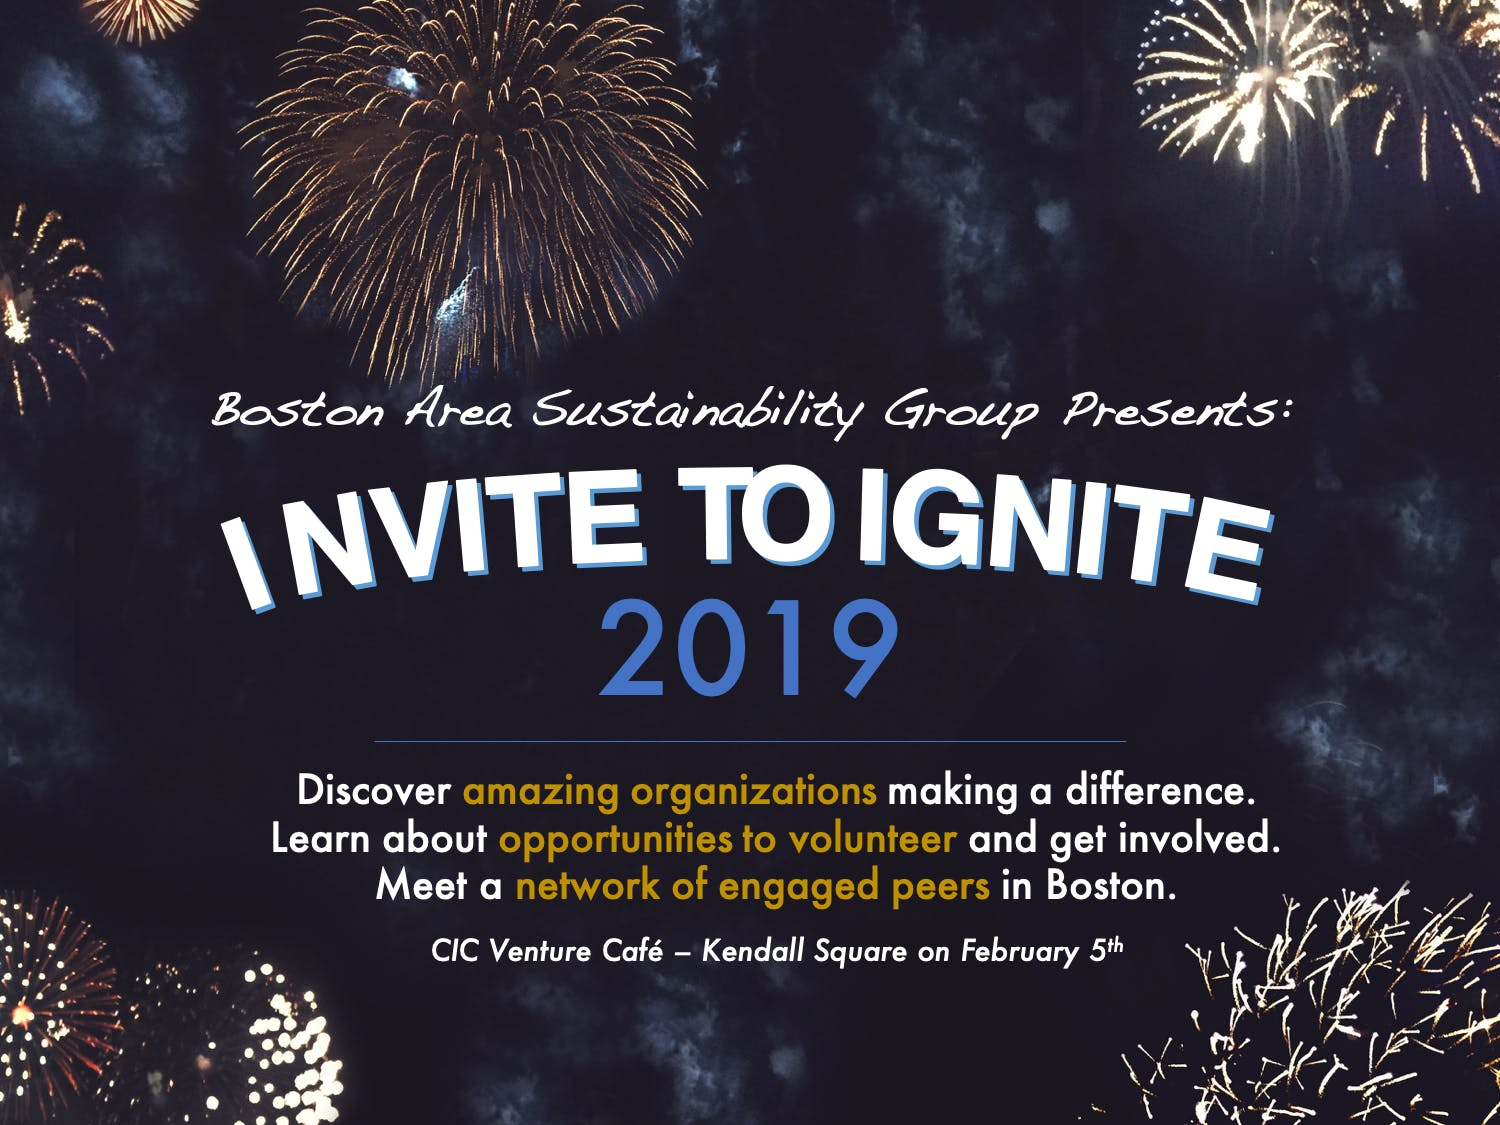 3rd Annual INVITE TO IGNITE